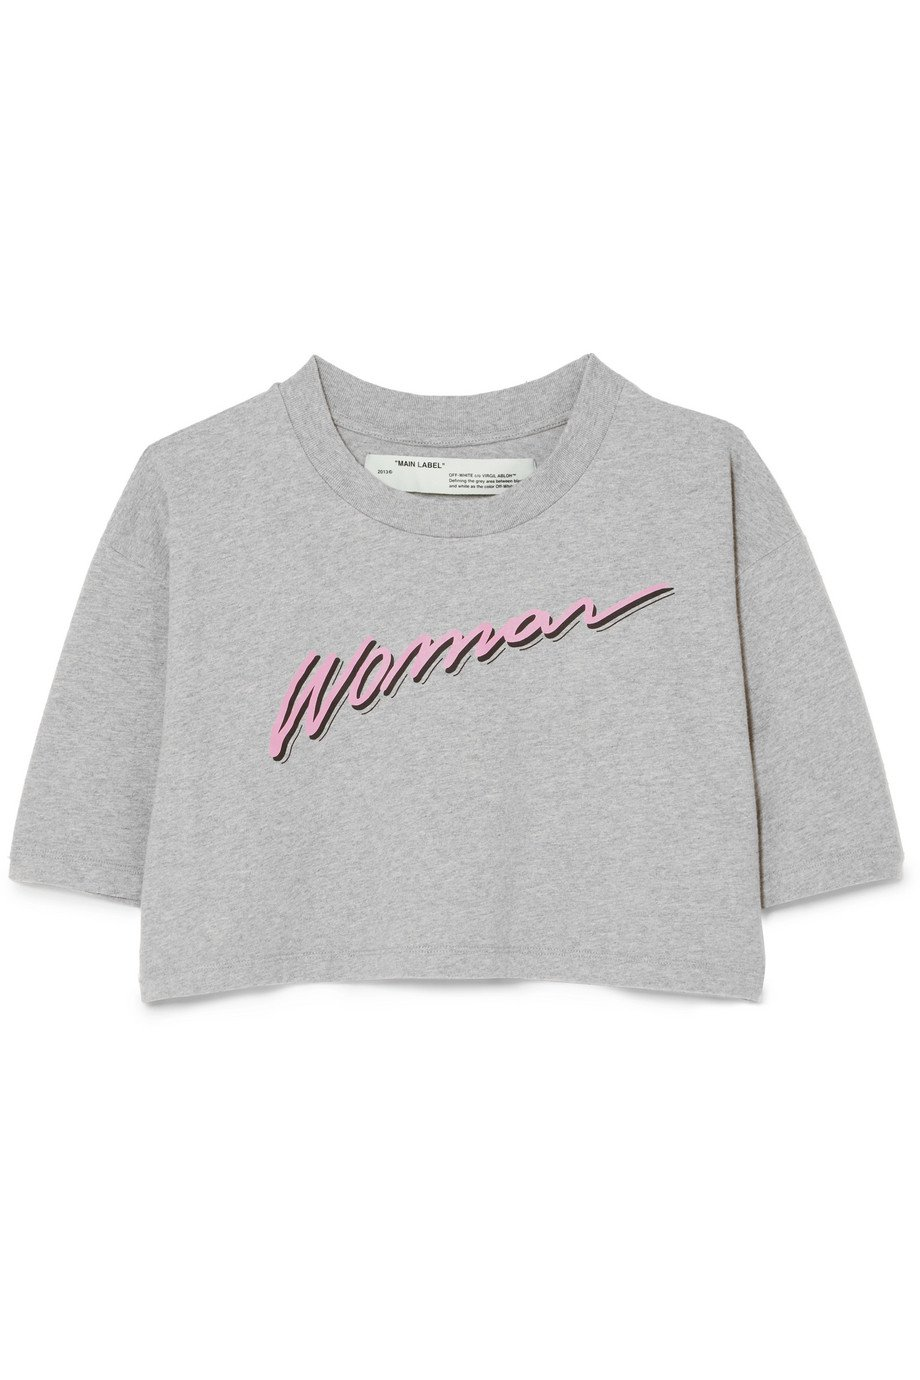 Off-White | International Women's Day cropped printed cotton-jersey T-shirt | NET-A-PORTER.COM